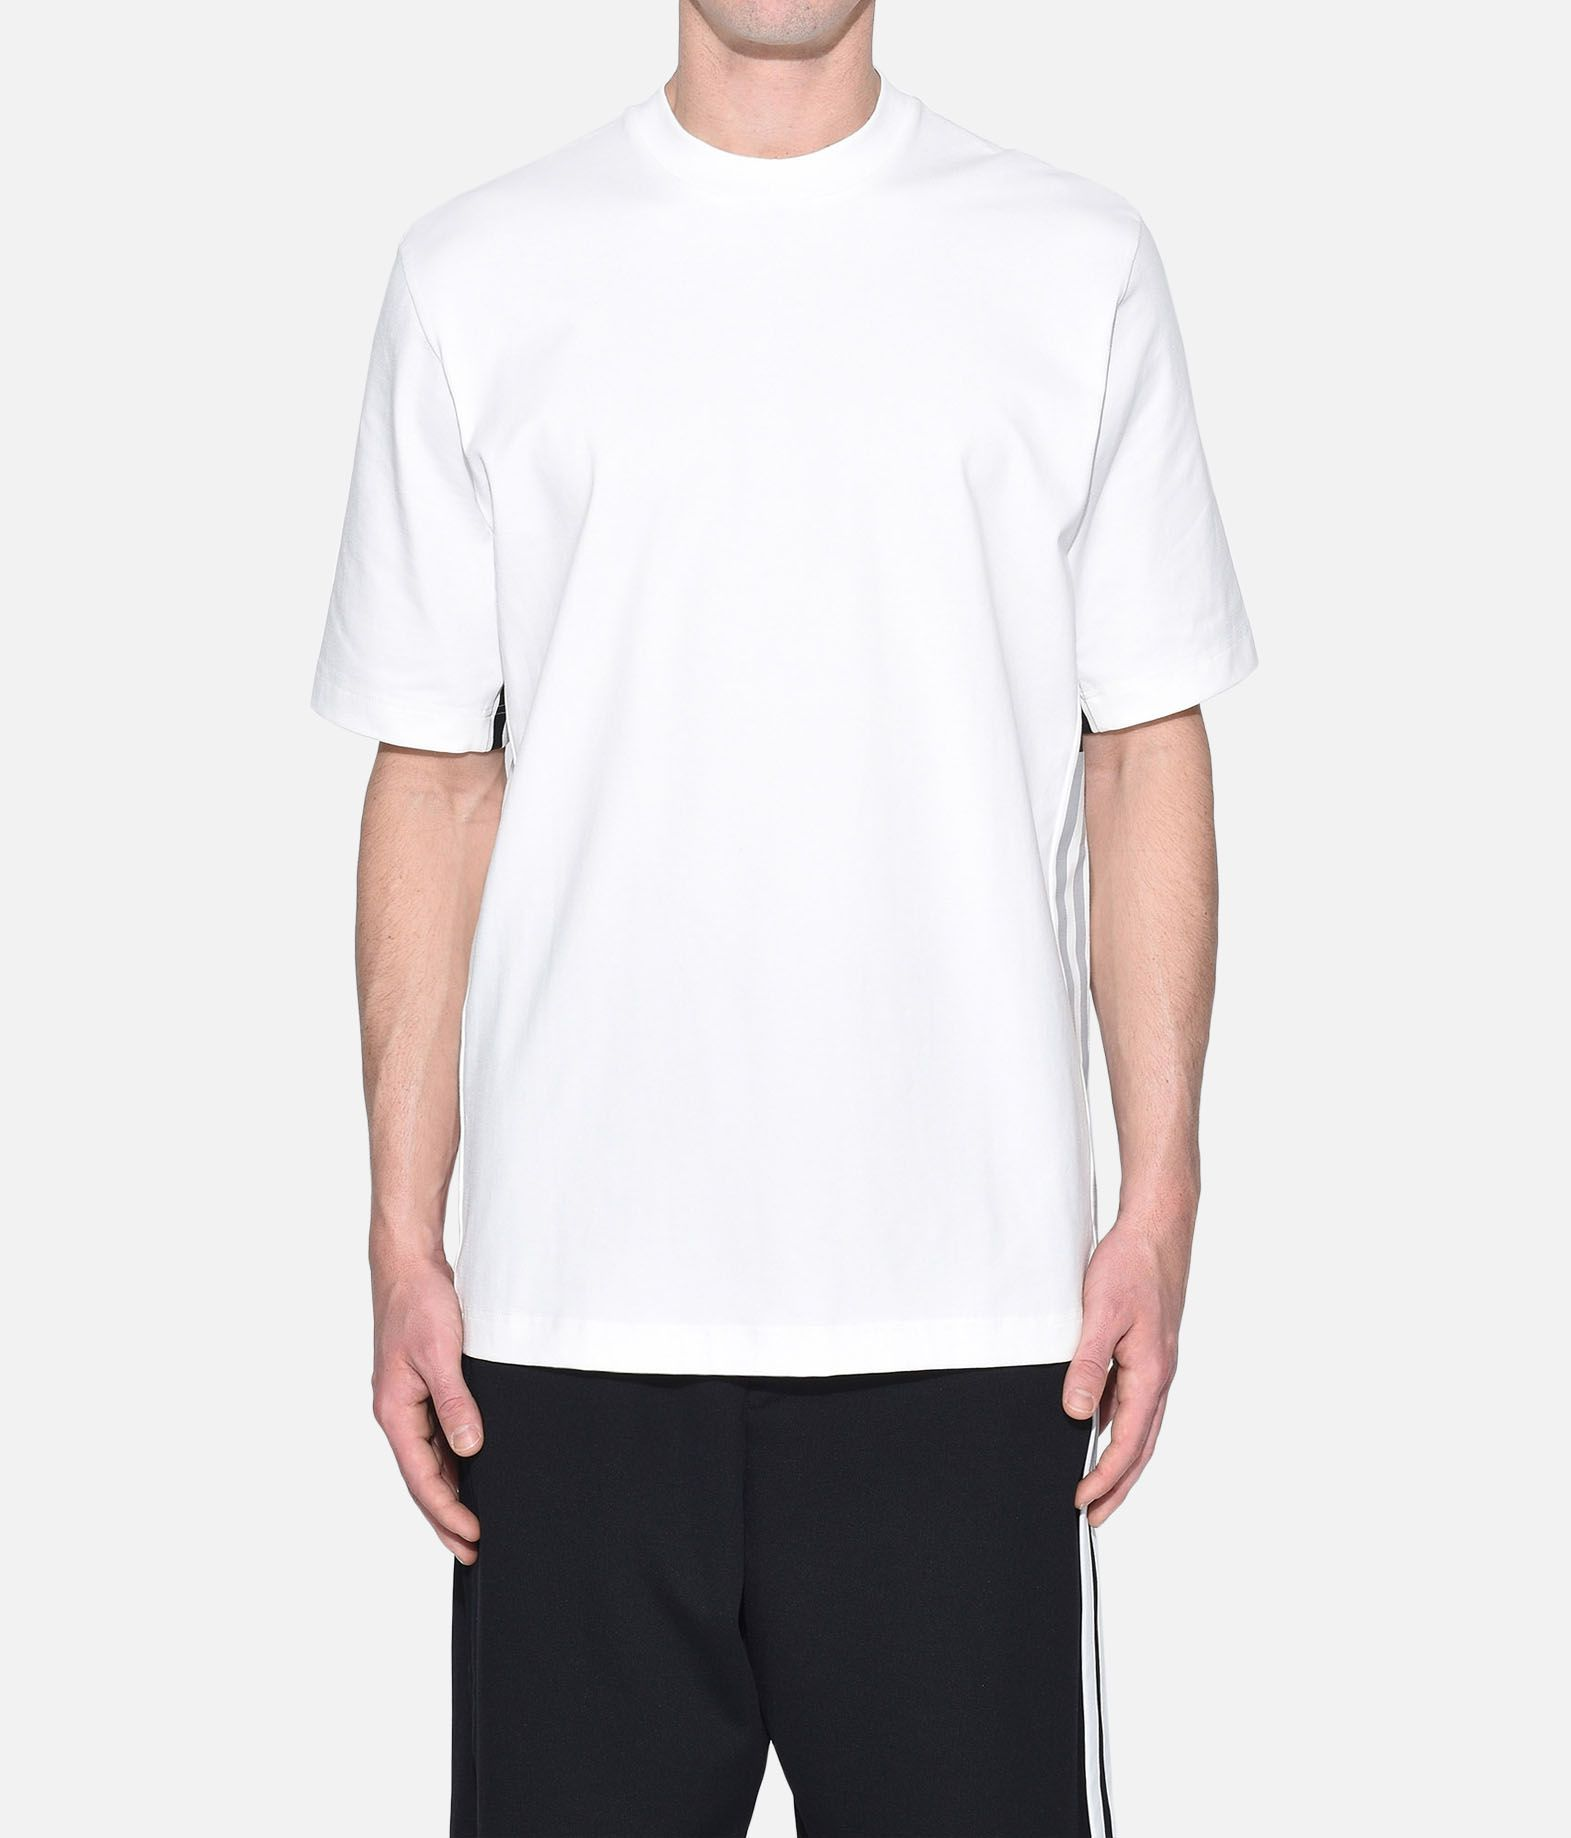 Y-3 Y-3 3-Stripes Tee Short sleeve t-shirt Man r